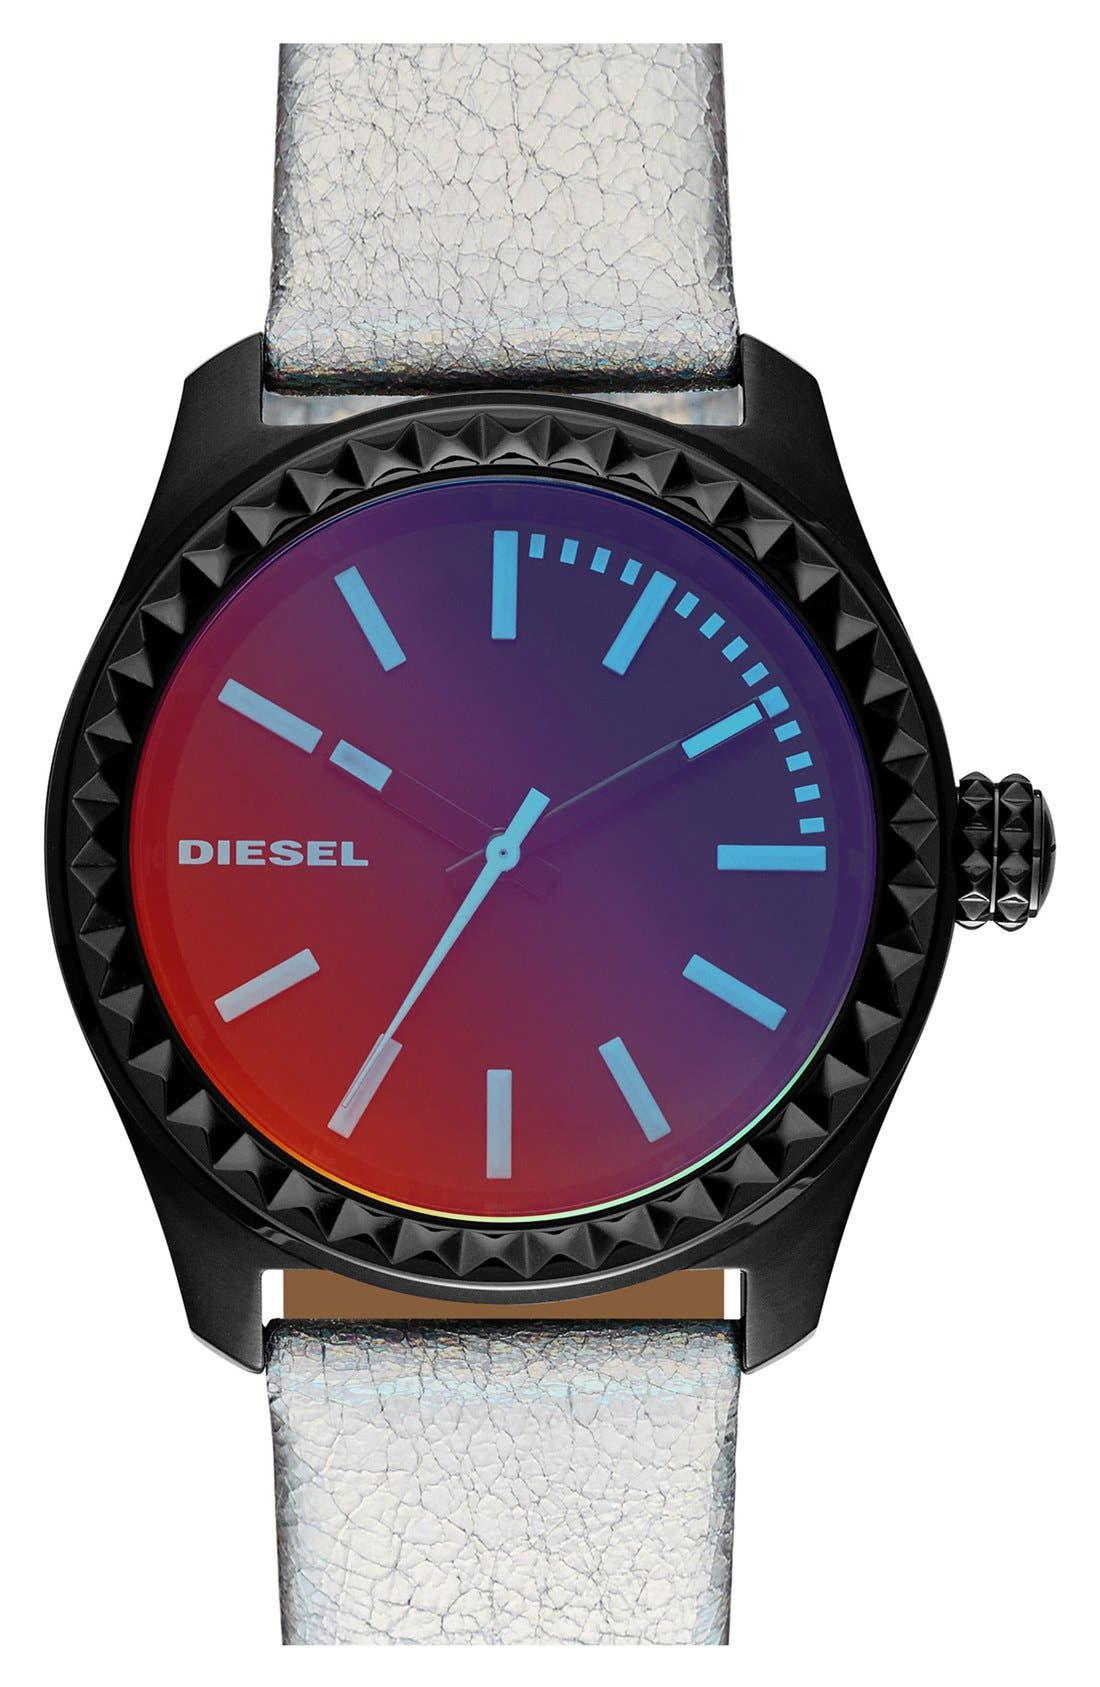 Main Image - DIESEL® 'Kray Kray' Iridescent Crystal Leather Strap Watch, 38mm